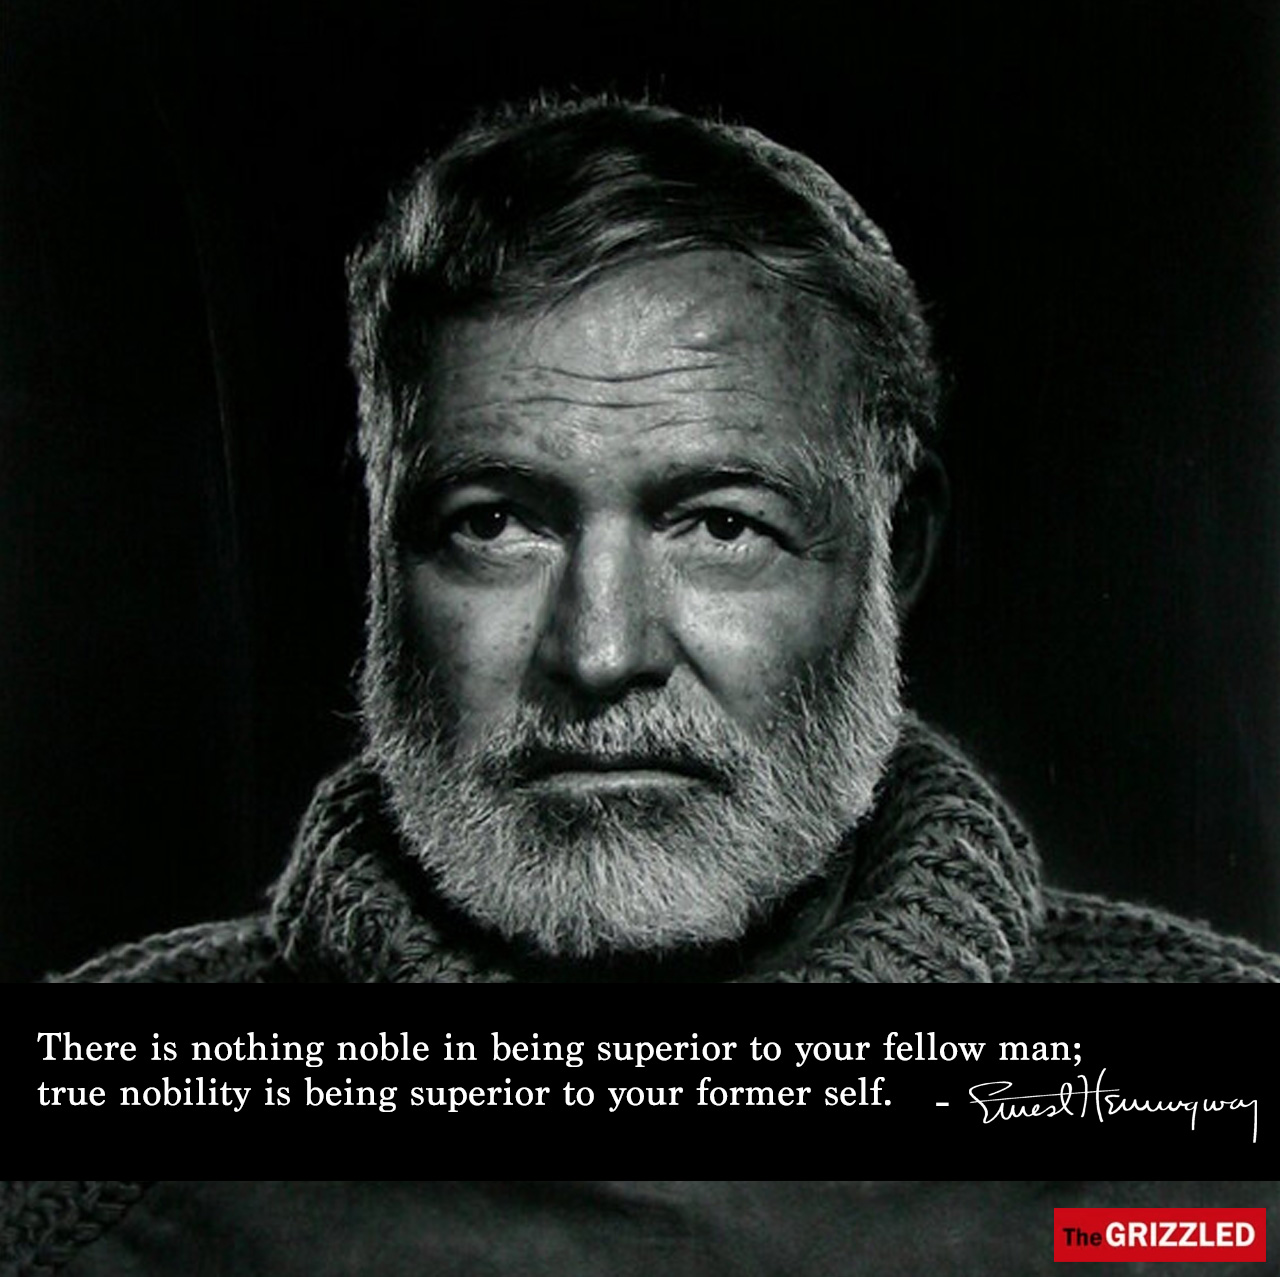 """Ernest Hemingway Quote """"There is nothing noble in being superior to your fellow man; true nobility is being superior to your former self."""""""